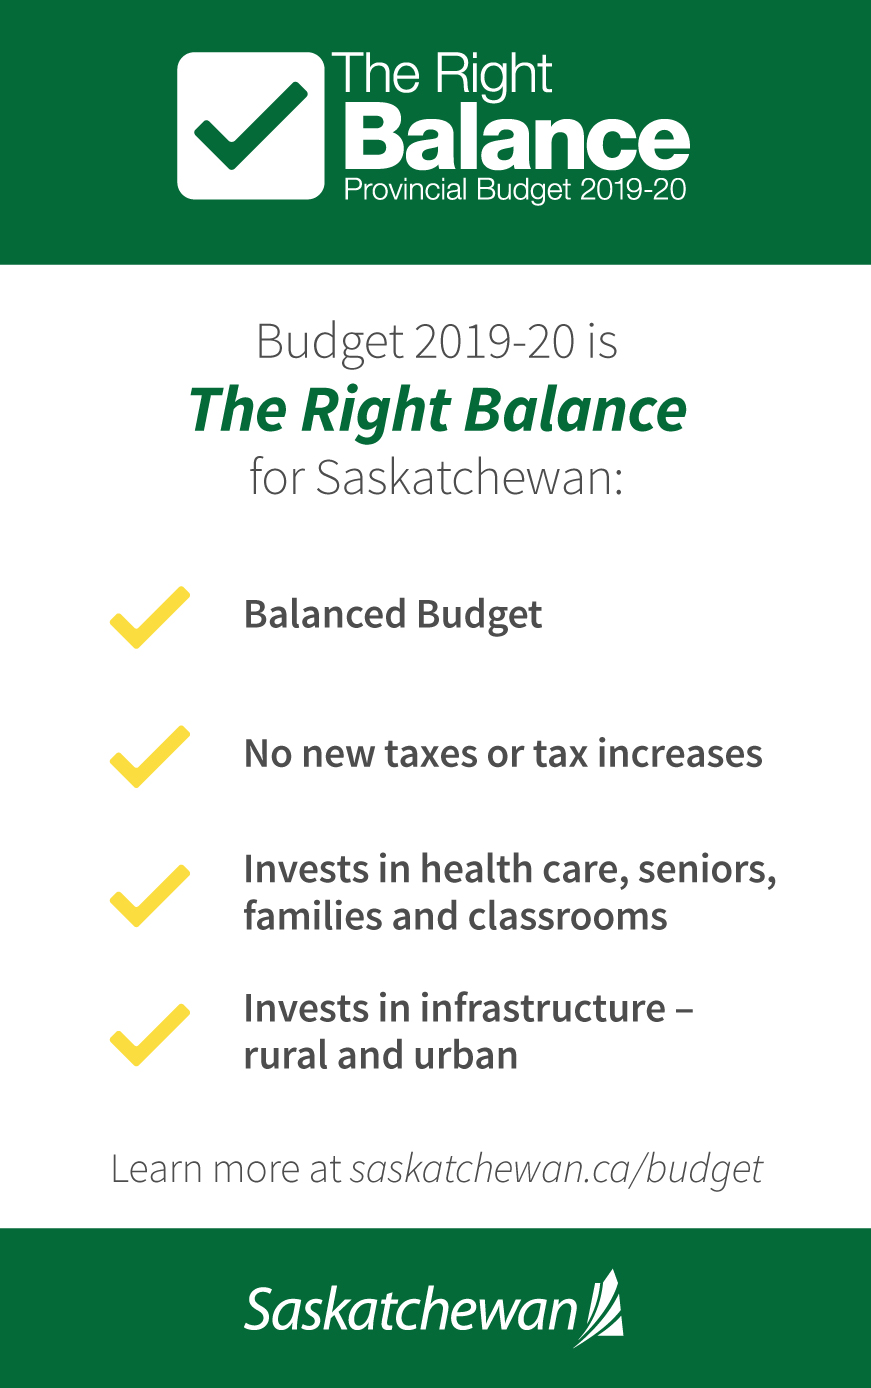 No new taxes or tax increases